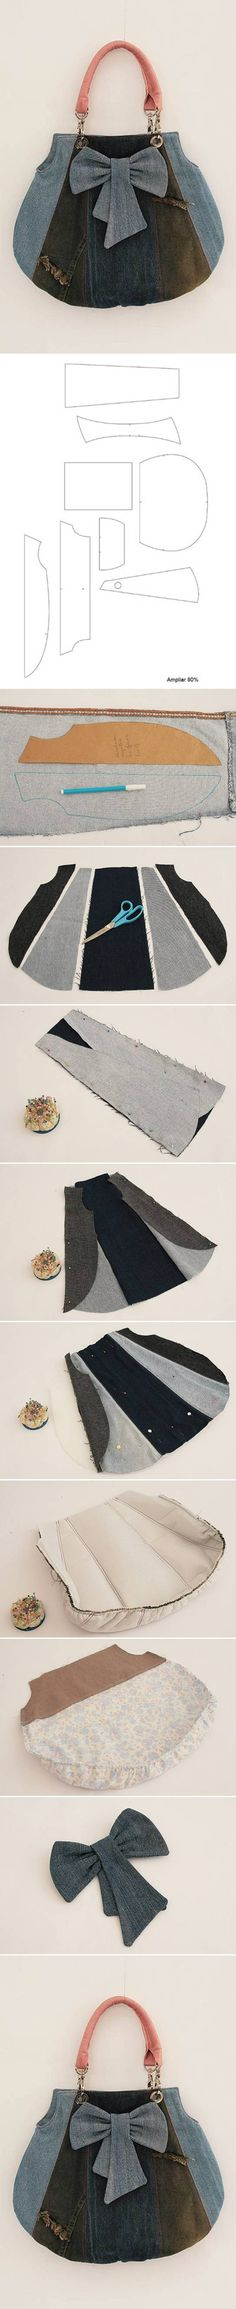 DIY Old Jeans Fashion Bag <3 love this <3